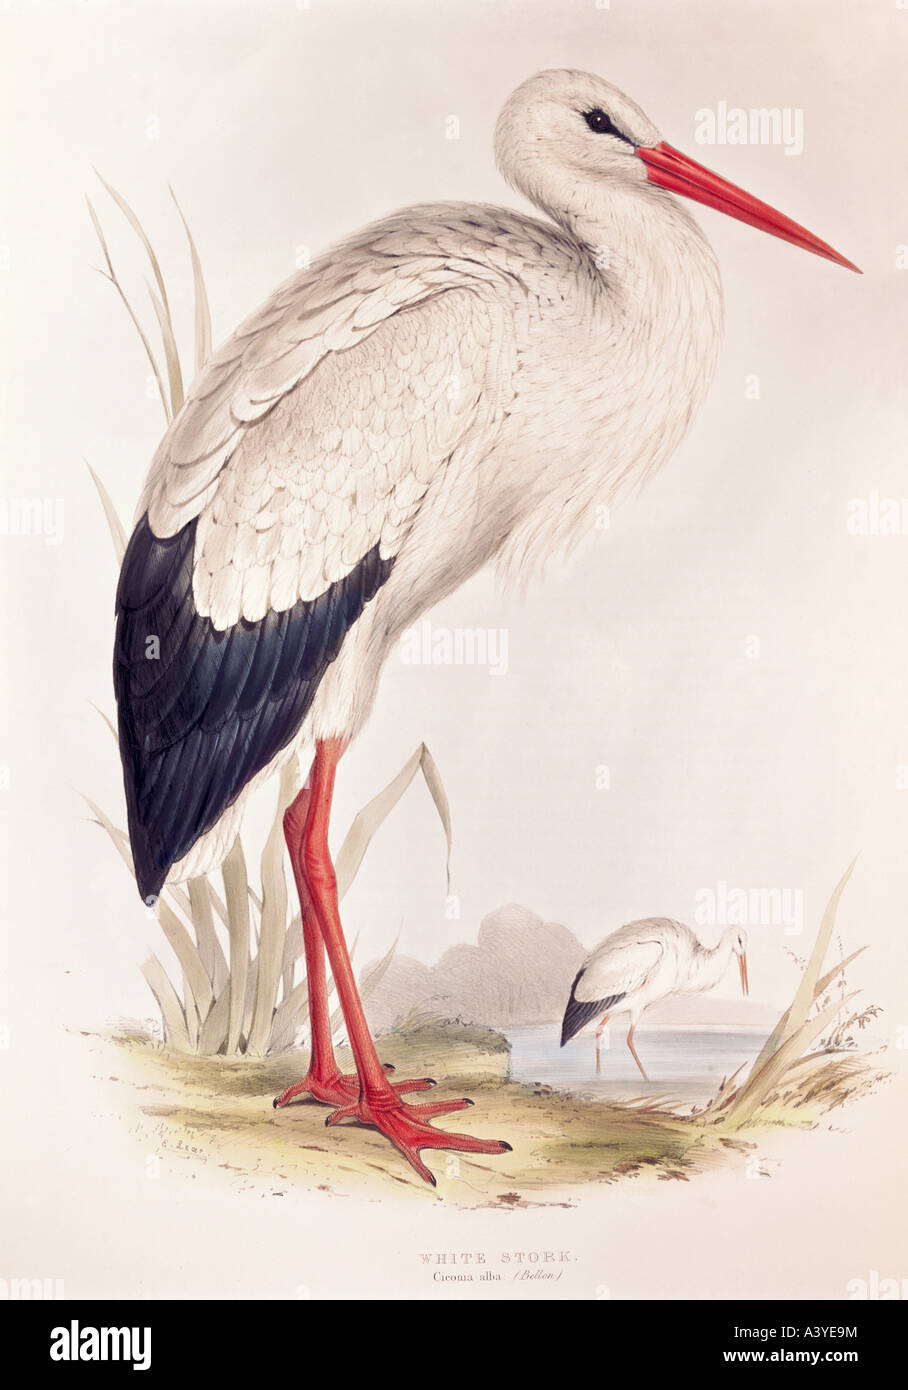 zoology / animal, avian / bird, ciconiidae, white stork, (ciconia ciconia), colour lithograph, by Edward Lear, from Stock Photo